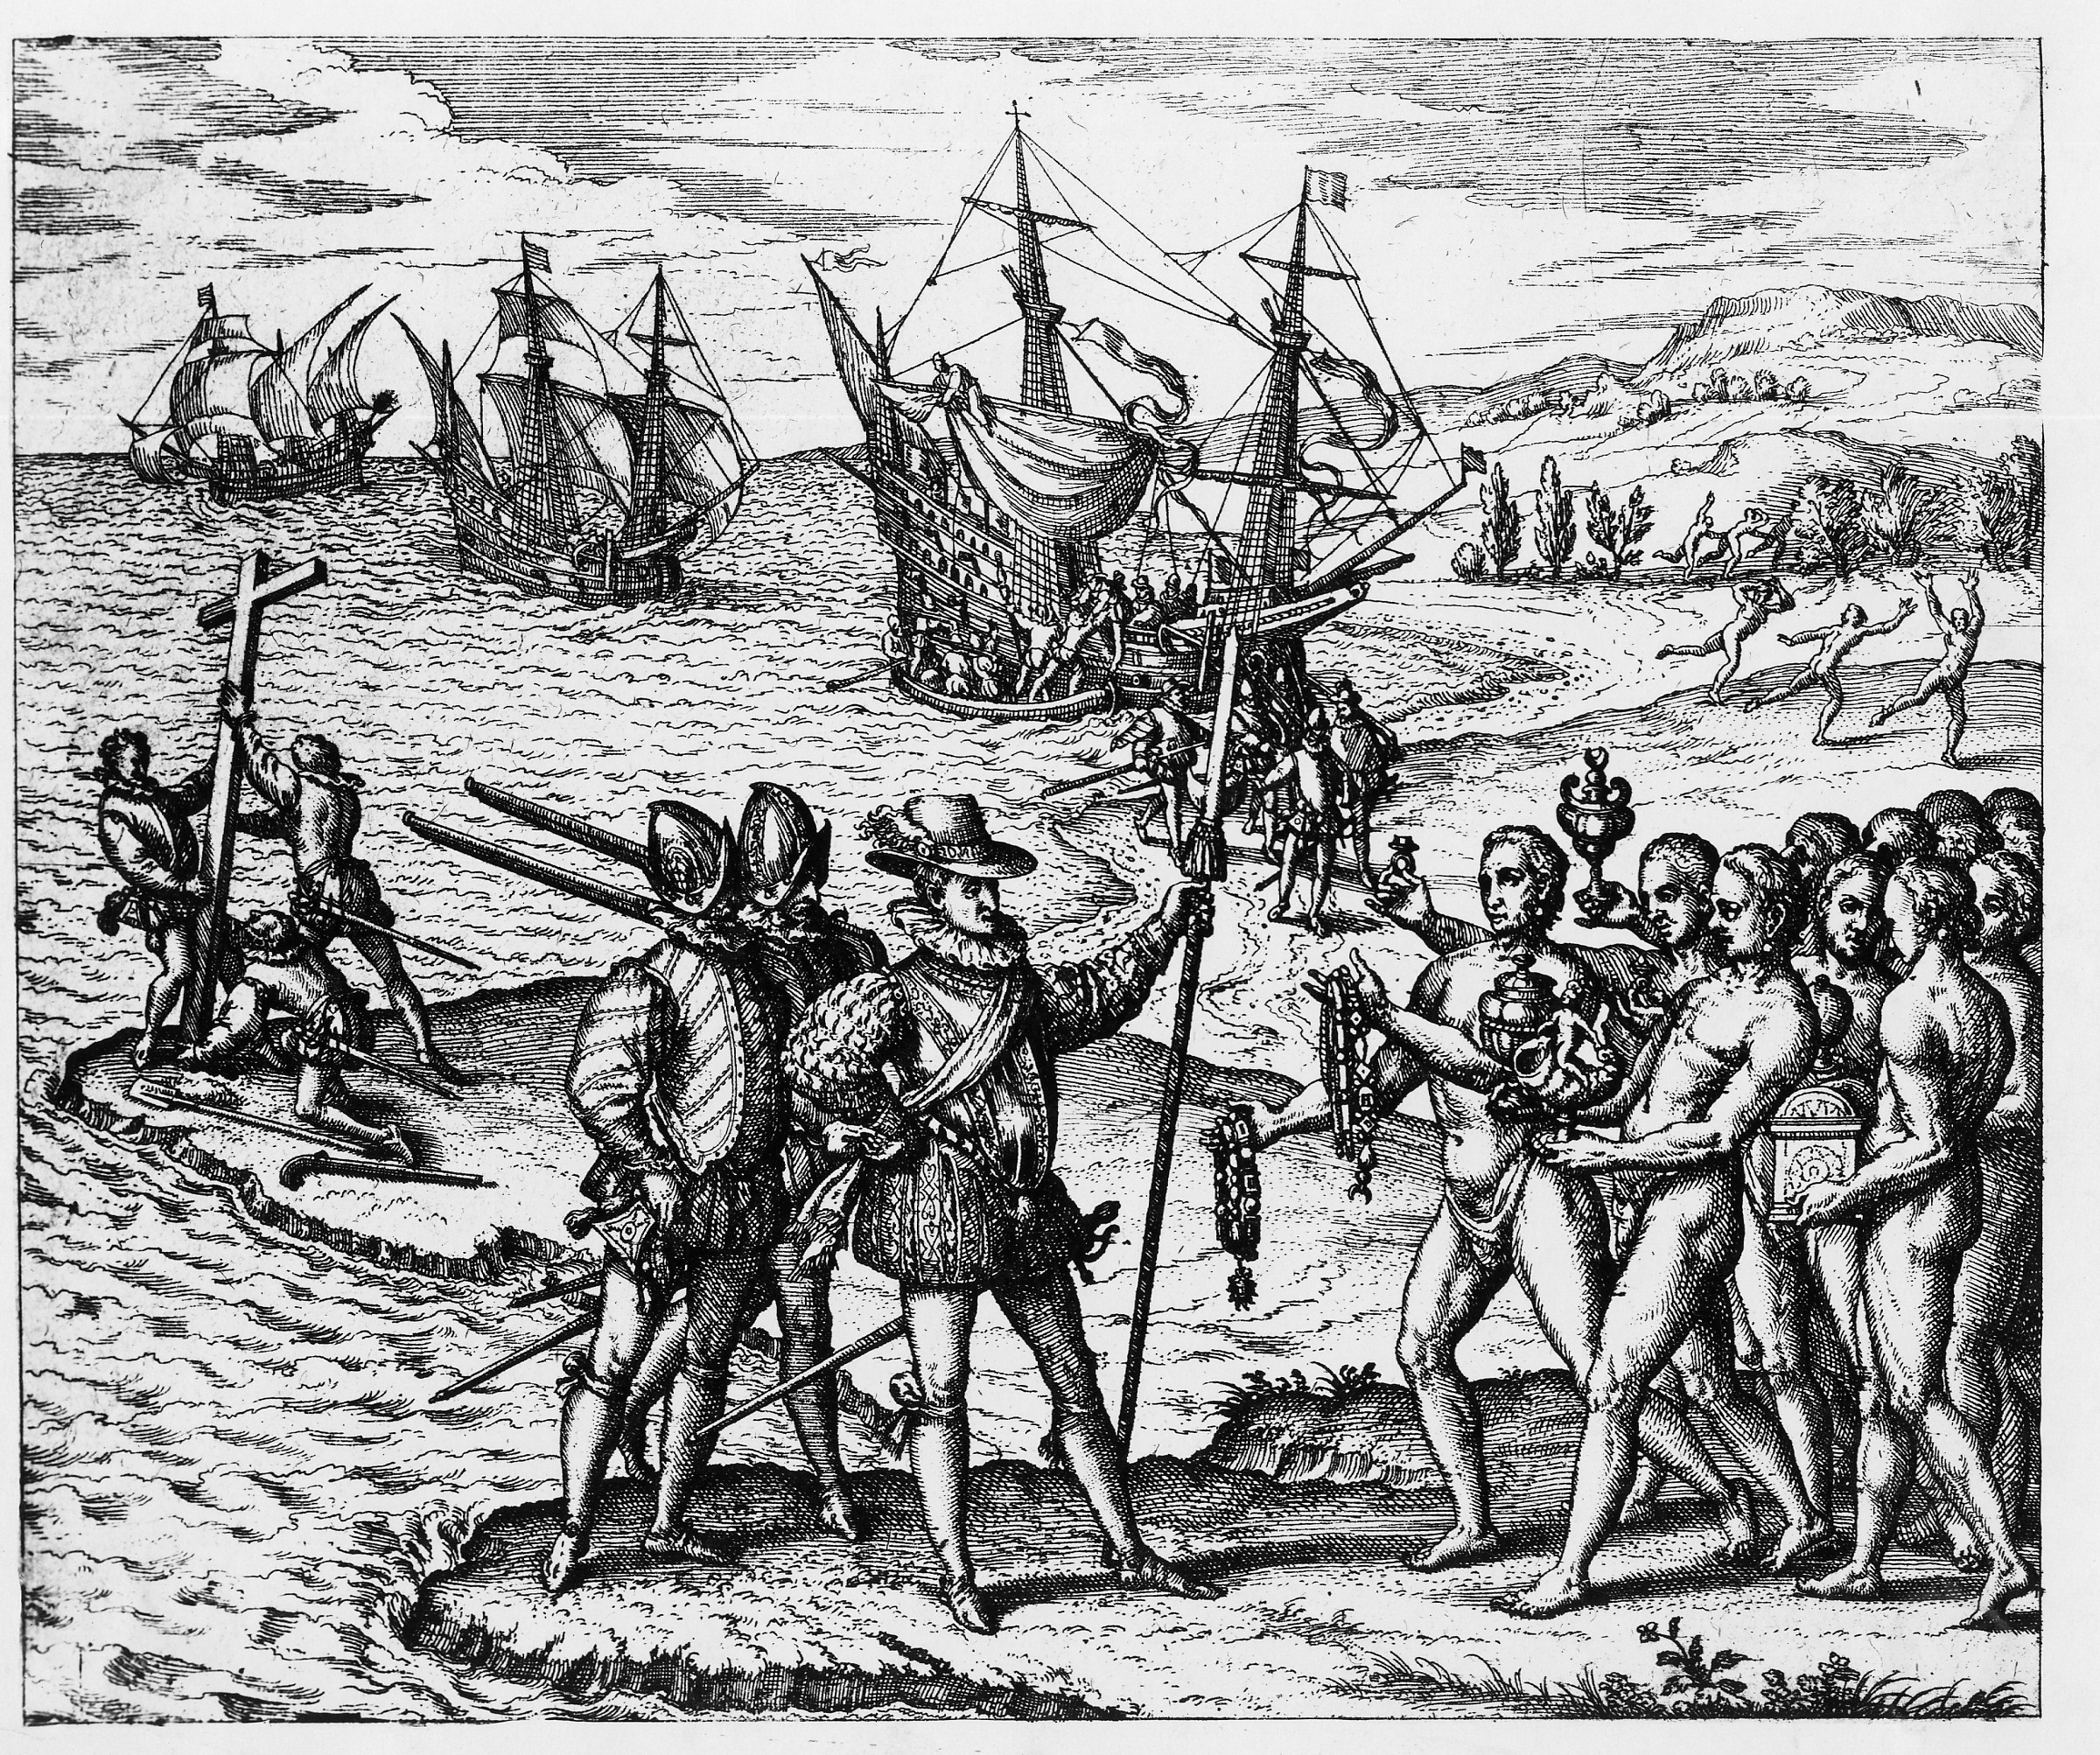 Columbus landing on Hispaniola, December 6, 1492, greeted by Arawak Indians offering Columbus's men piles of gold in exchange for their shoelaces. Illustration from Theodor de Bry, 1594.